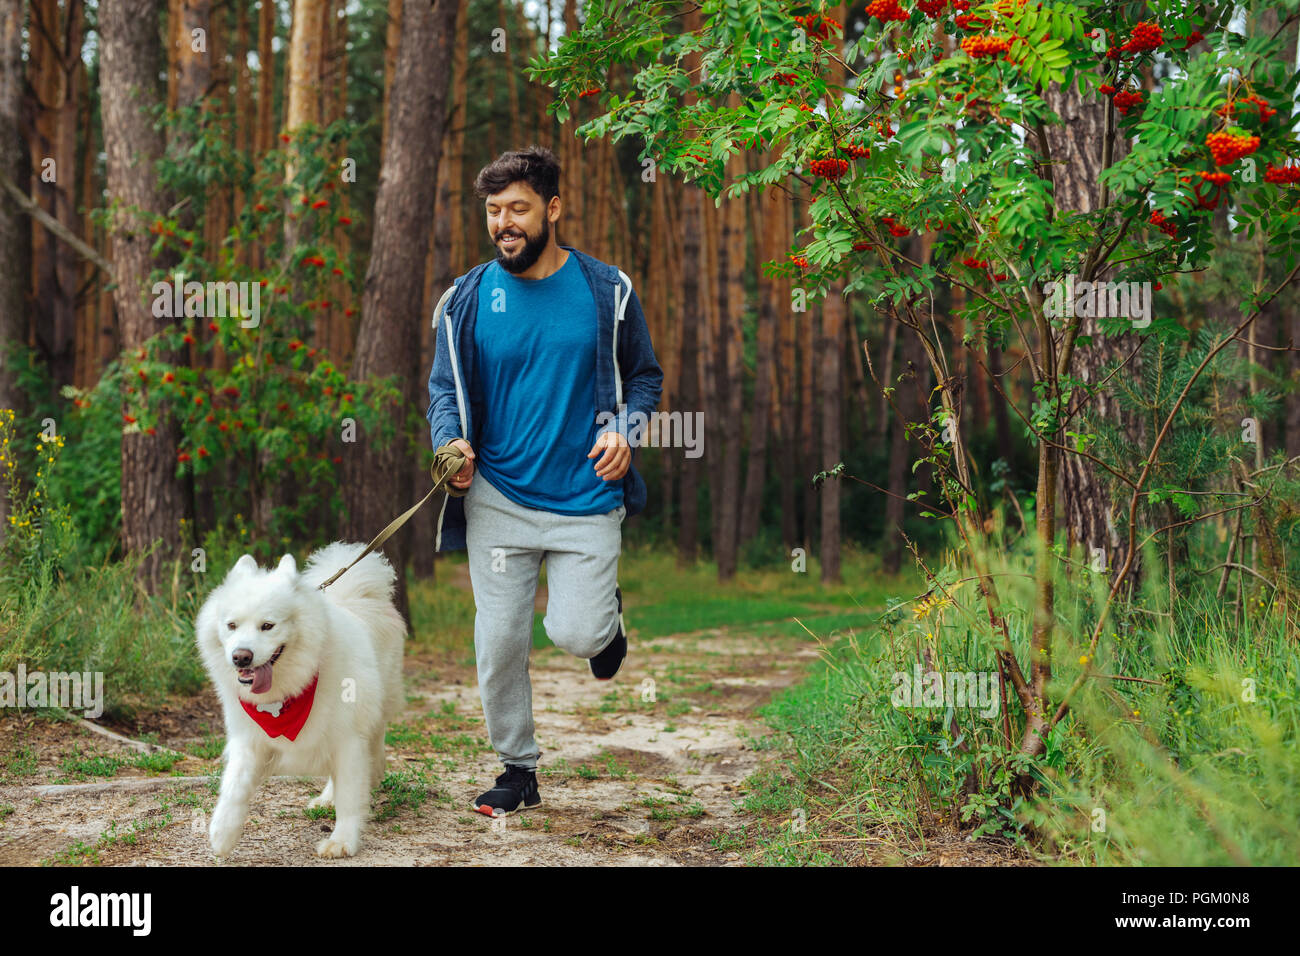 Bearded man wearing sport suit running with dog in the forest - Stock Image